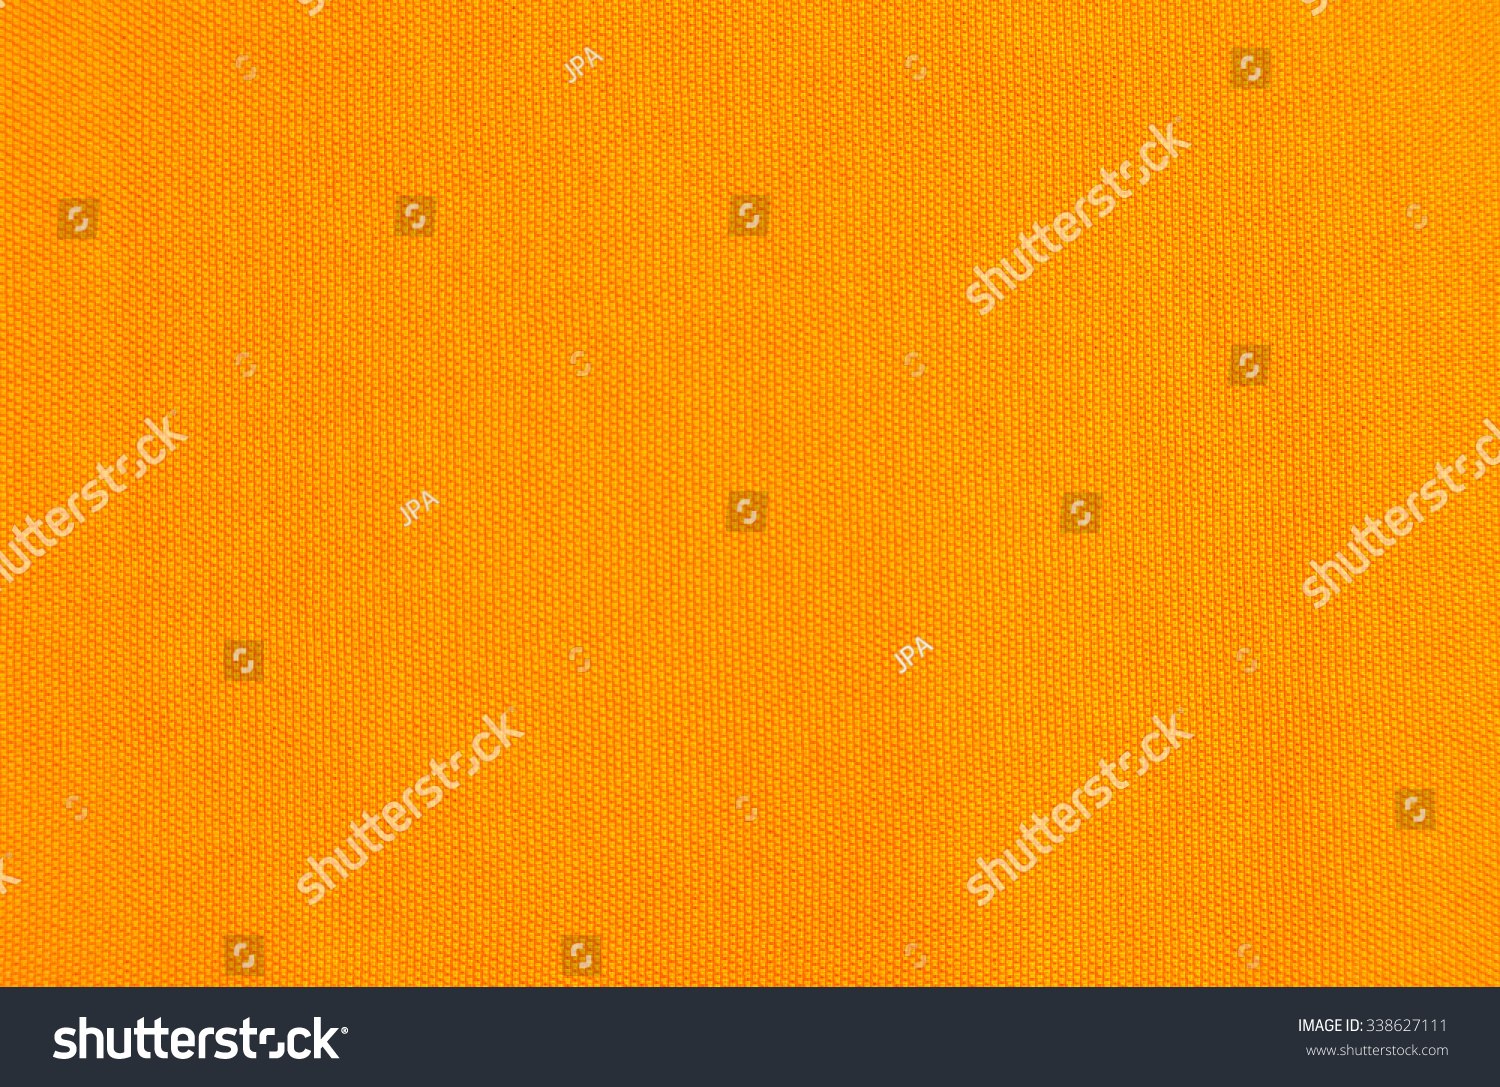 fabric texture orange color with pattern for design background abstract cloth woven wallpaper